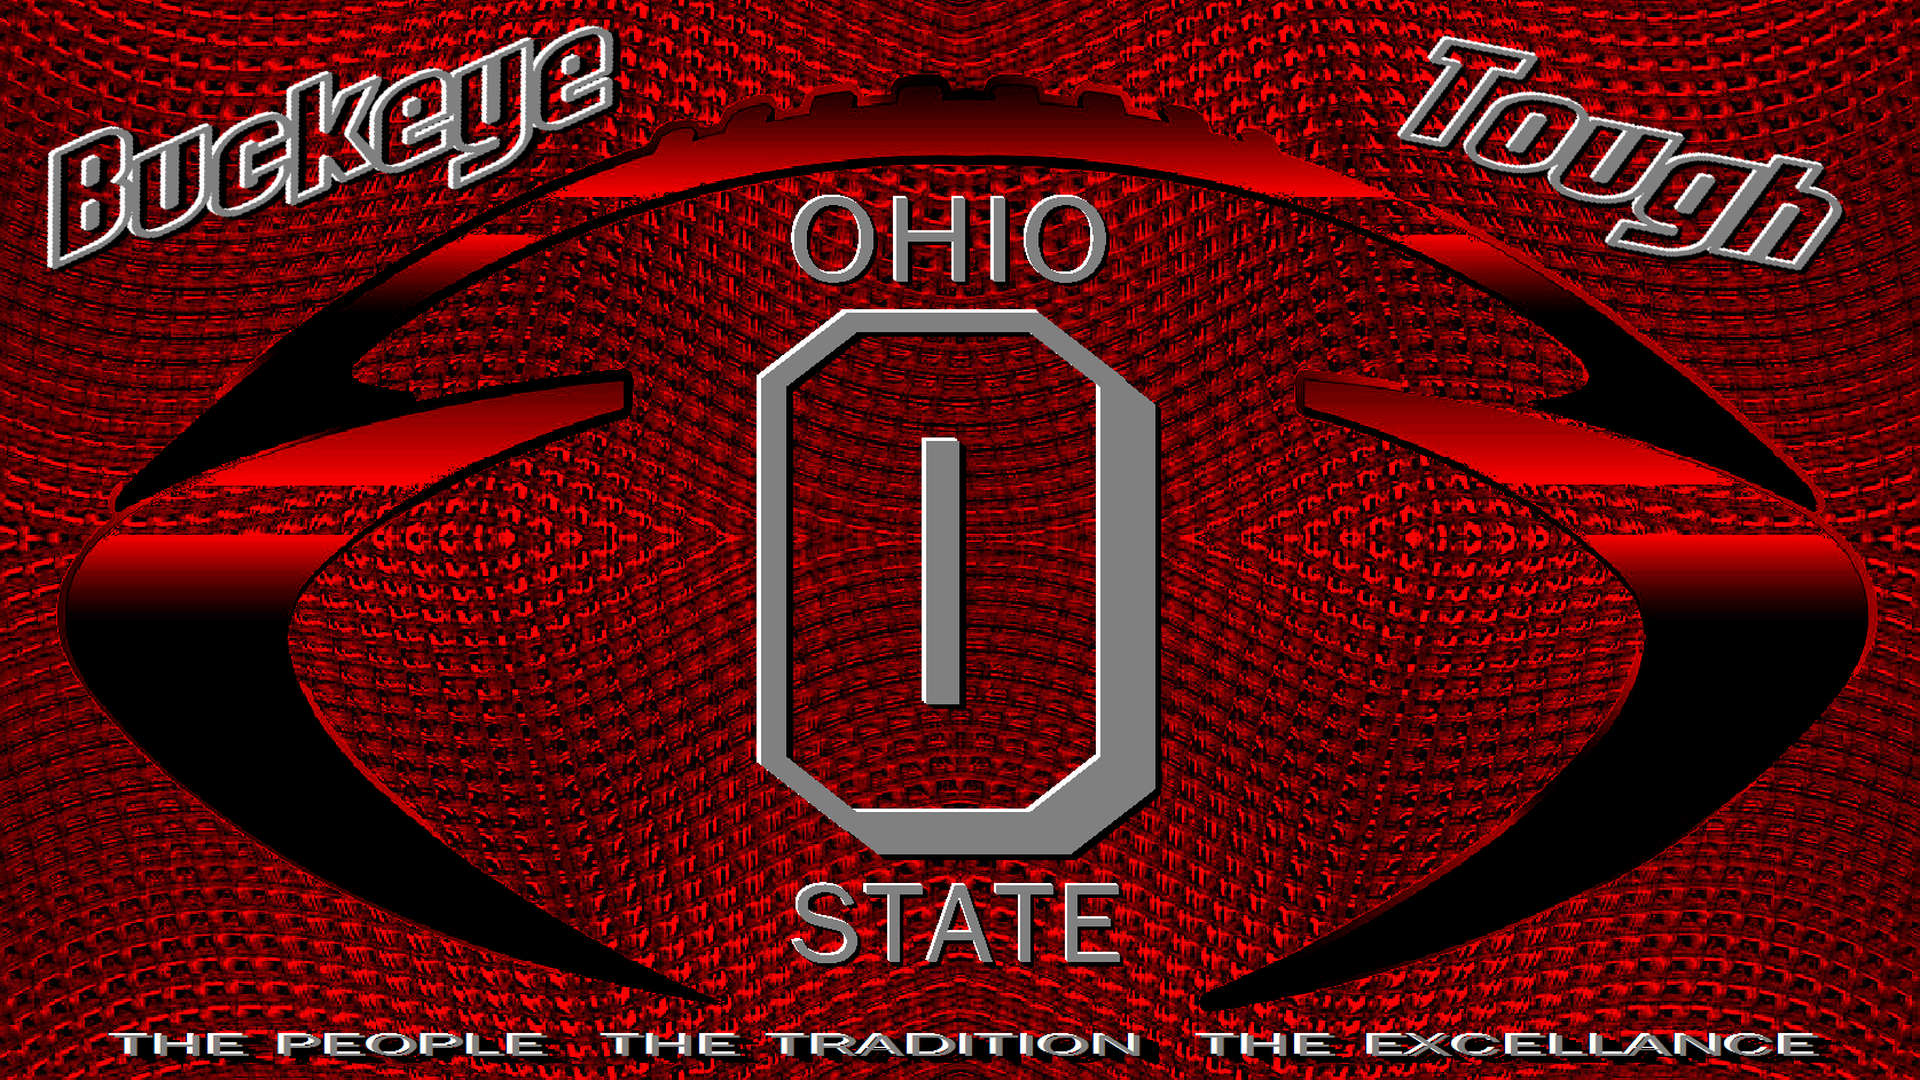 Ohio State Football Wallpaper Images amp Pictures   Becuo 1920x1080